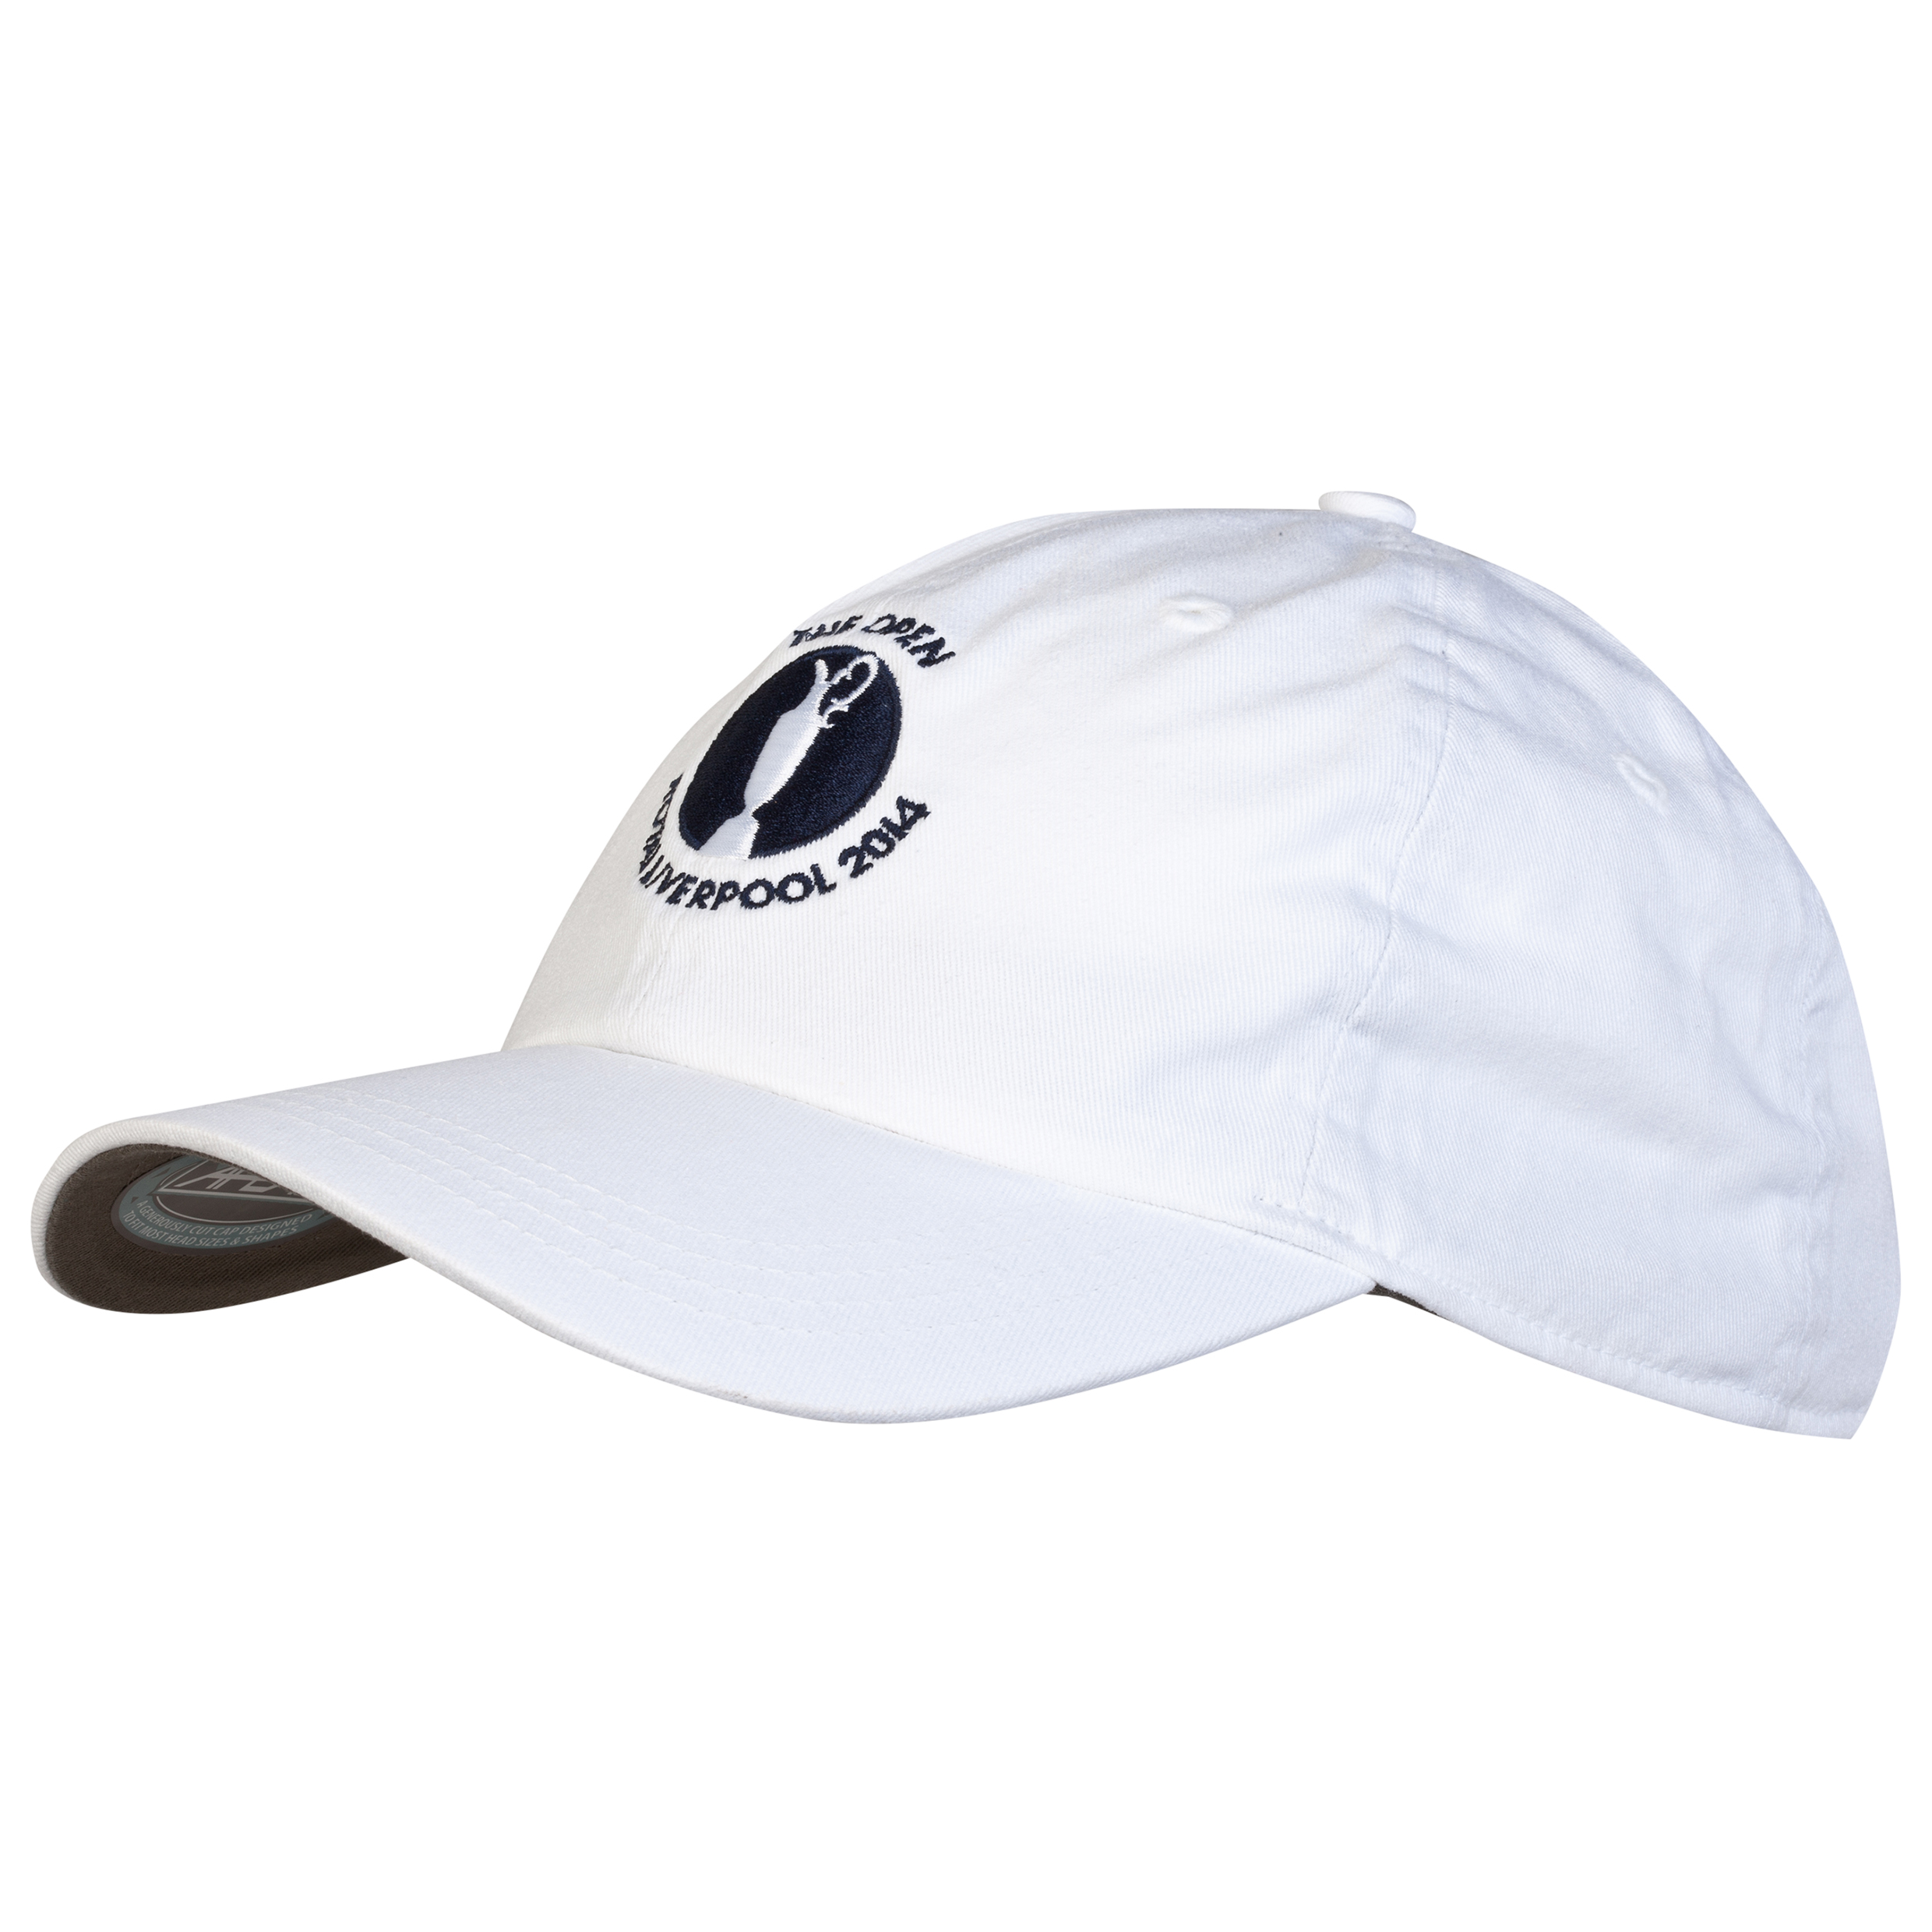 The Open Championship Royal Liverpool 2014 Classic Solid Unstructured Cap White